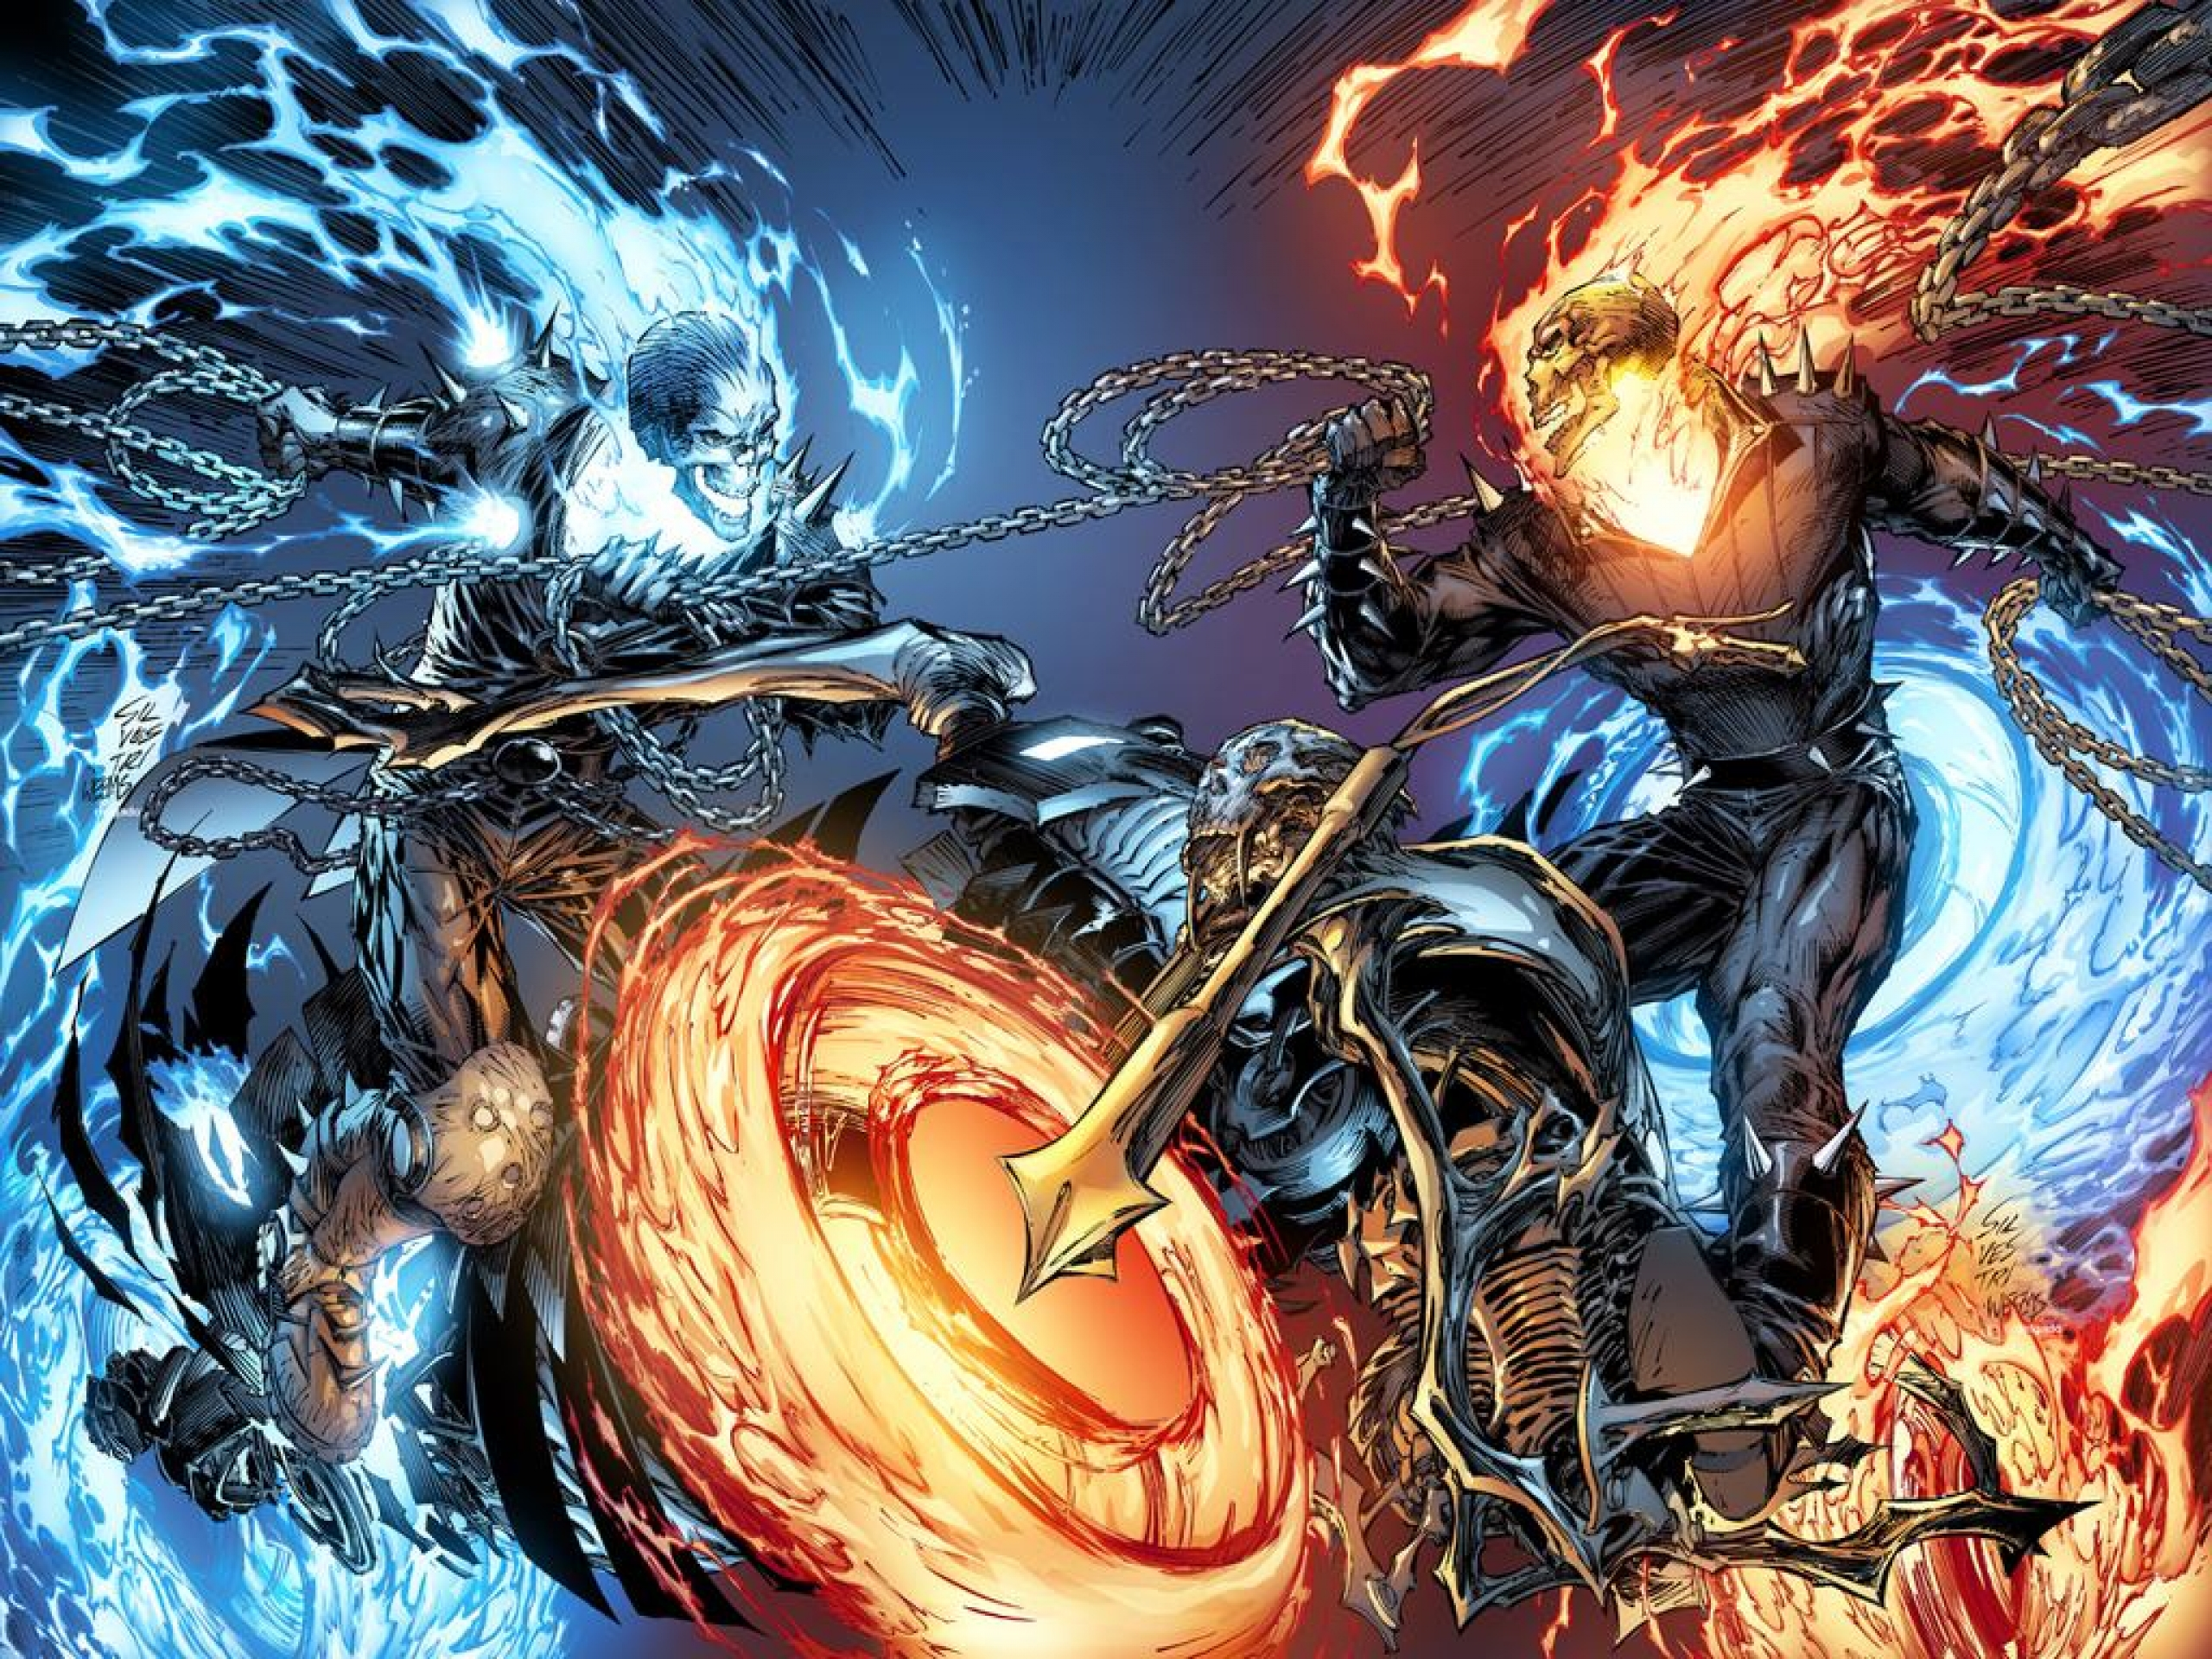 Ghost Rider Wallpaper wallpapers backgrounds 2560x1920